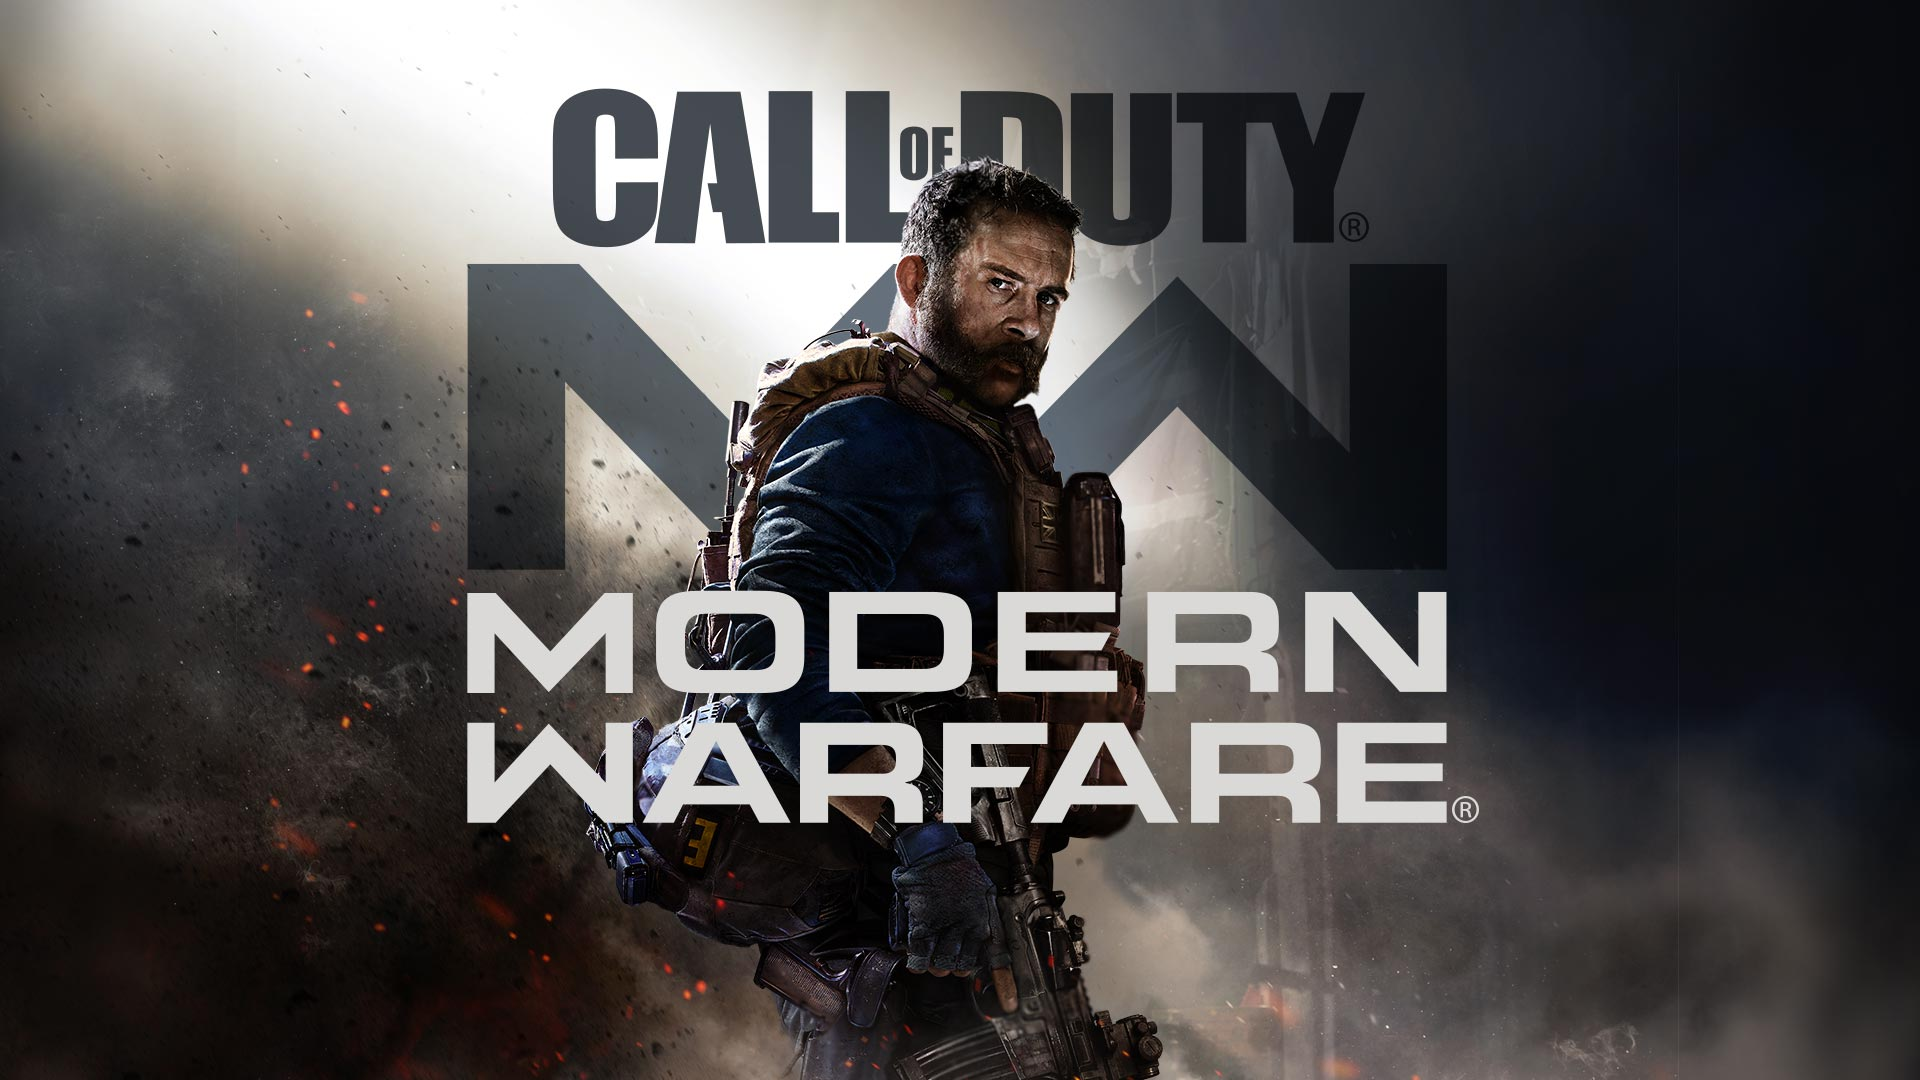 Call of Duty Modern Warfare Warzone PS4 Version Full Free Game Download